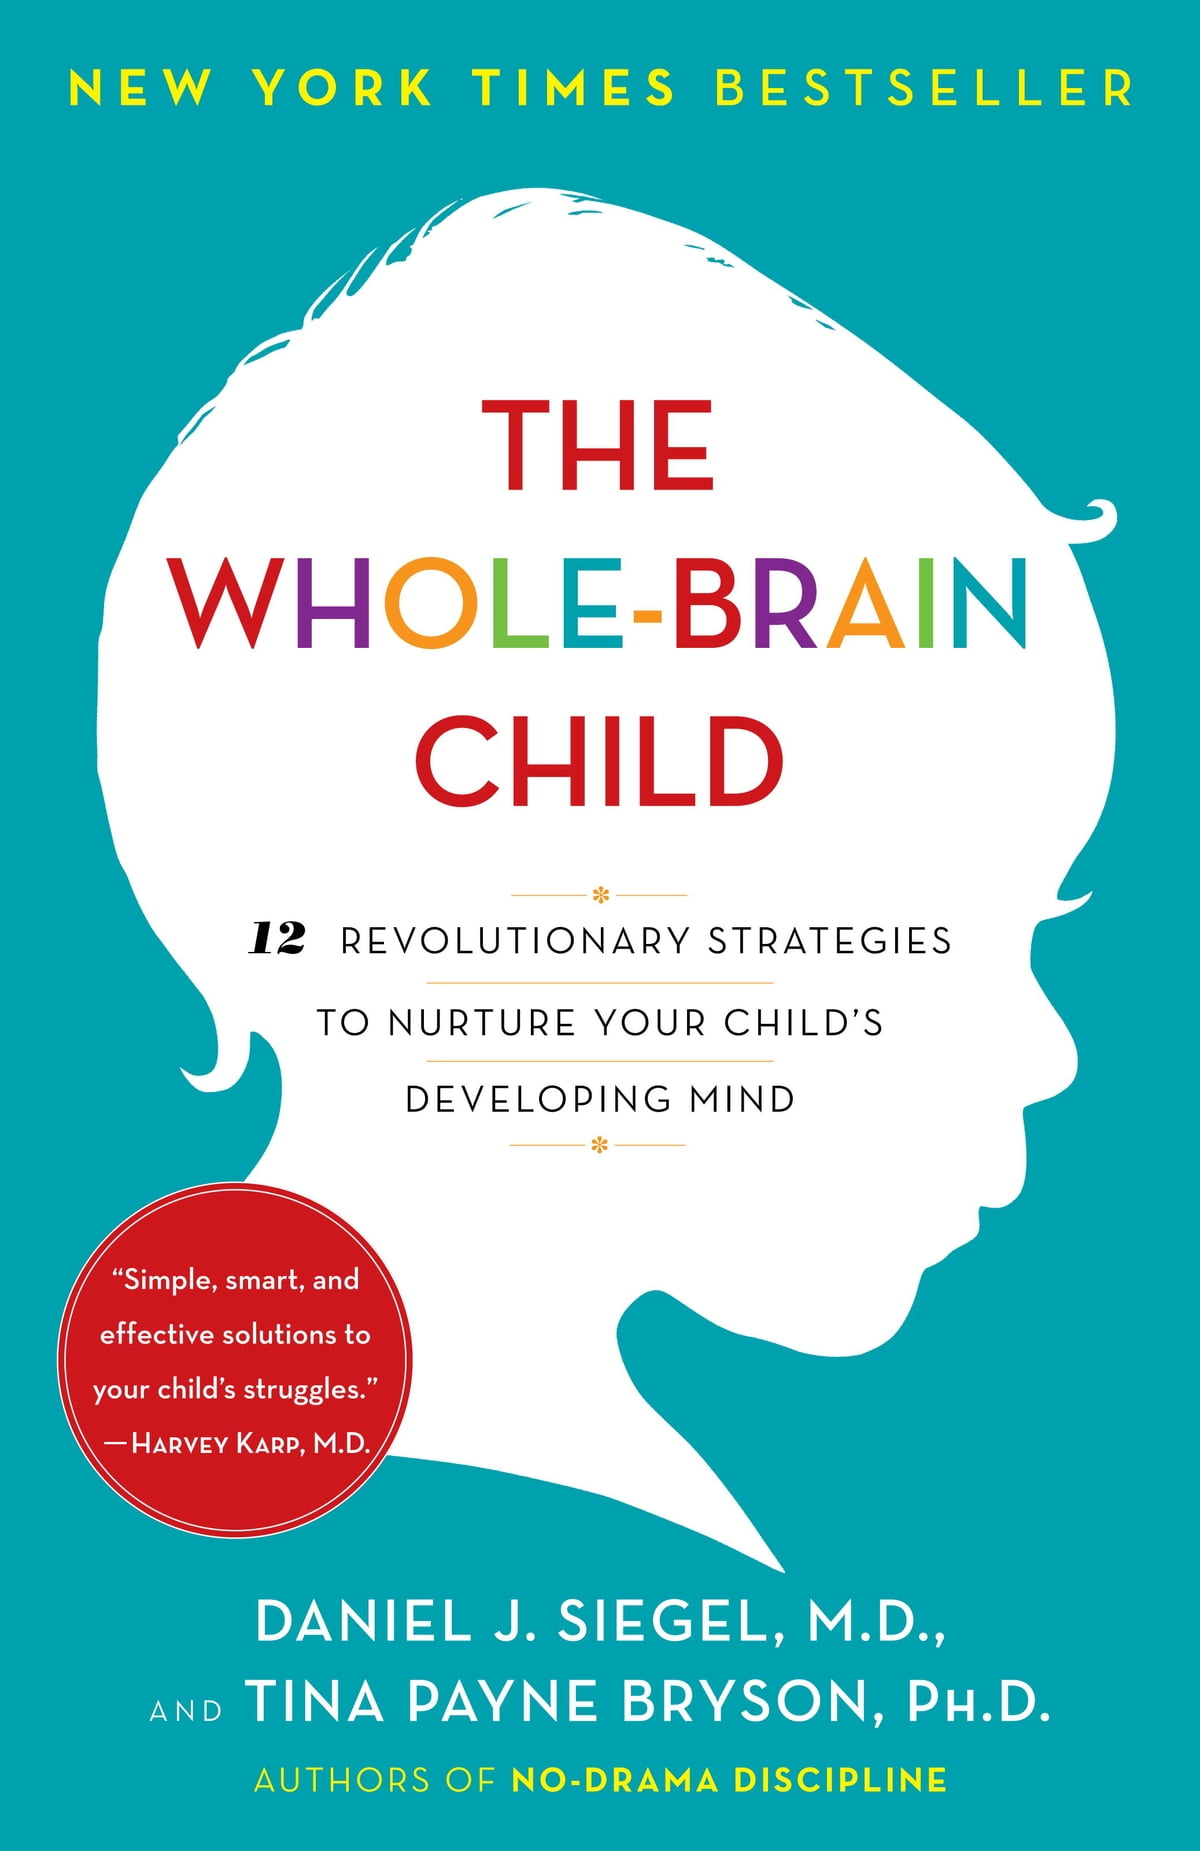 The Wholebrain Child  12 Revolutionary Strategies To Nurture Your Child's  Developing Mind Ebook